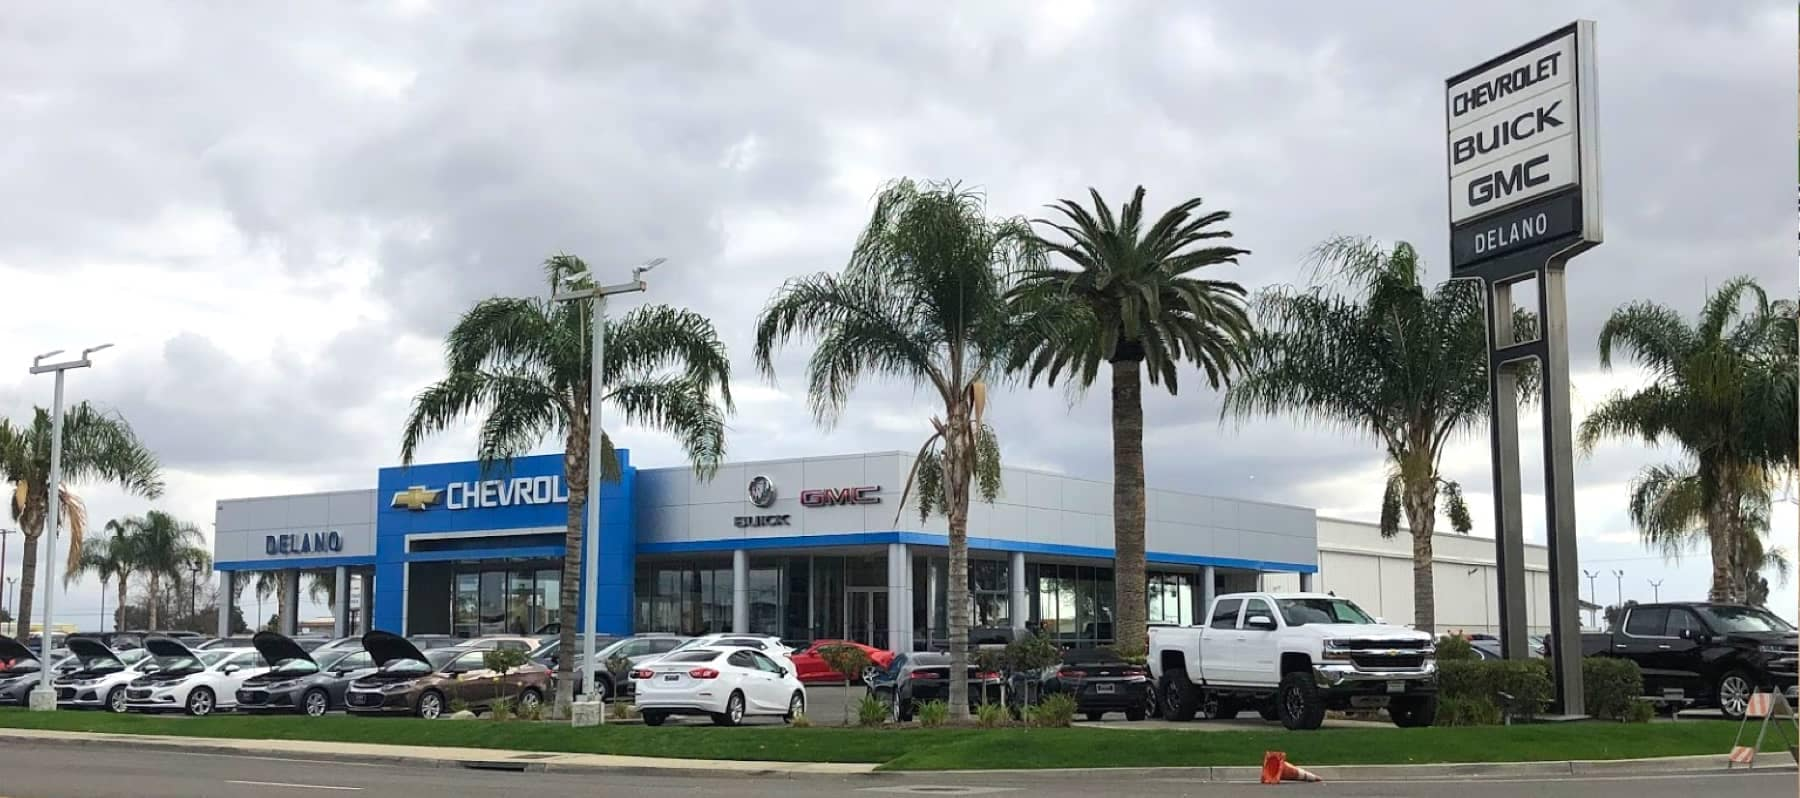 Dealership from outside